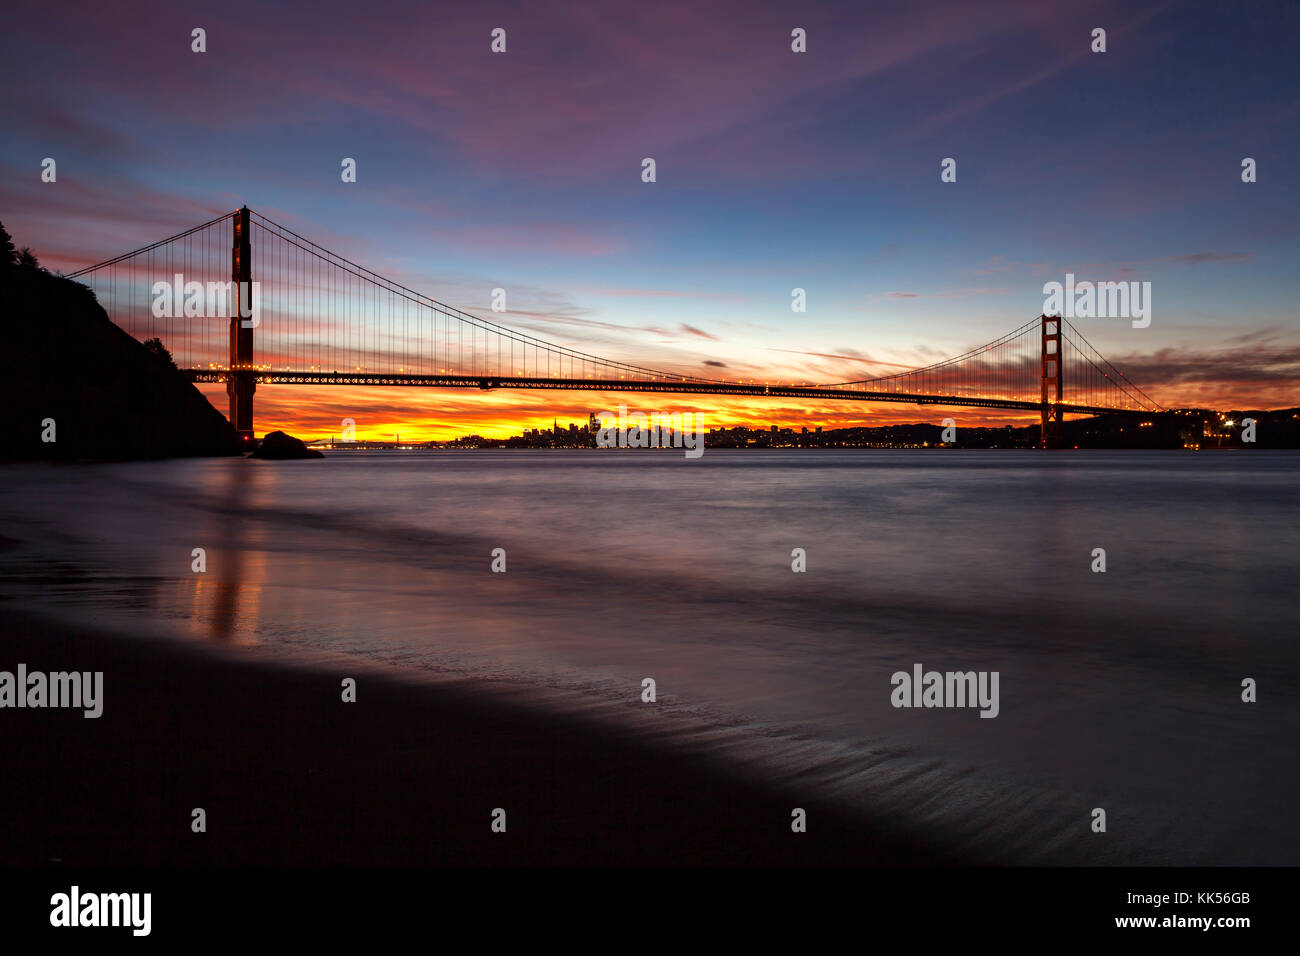 Golden Gate Bridge and San Francisco at dawn viewed from the Marin Headlands. - Stock Image